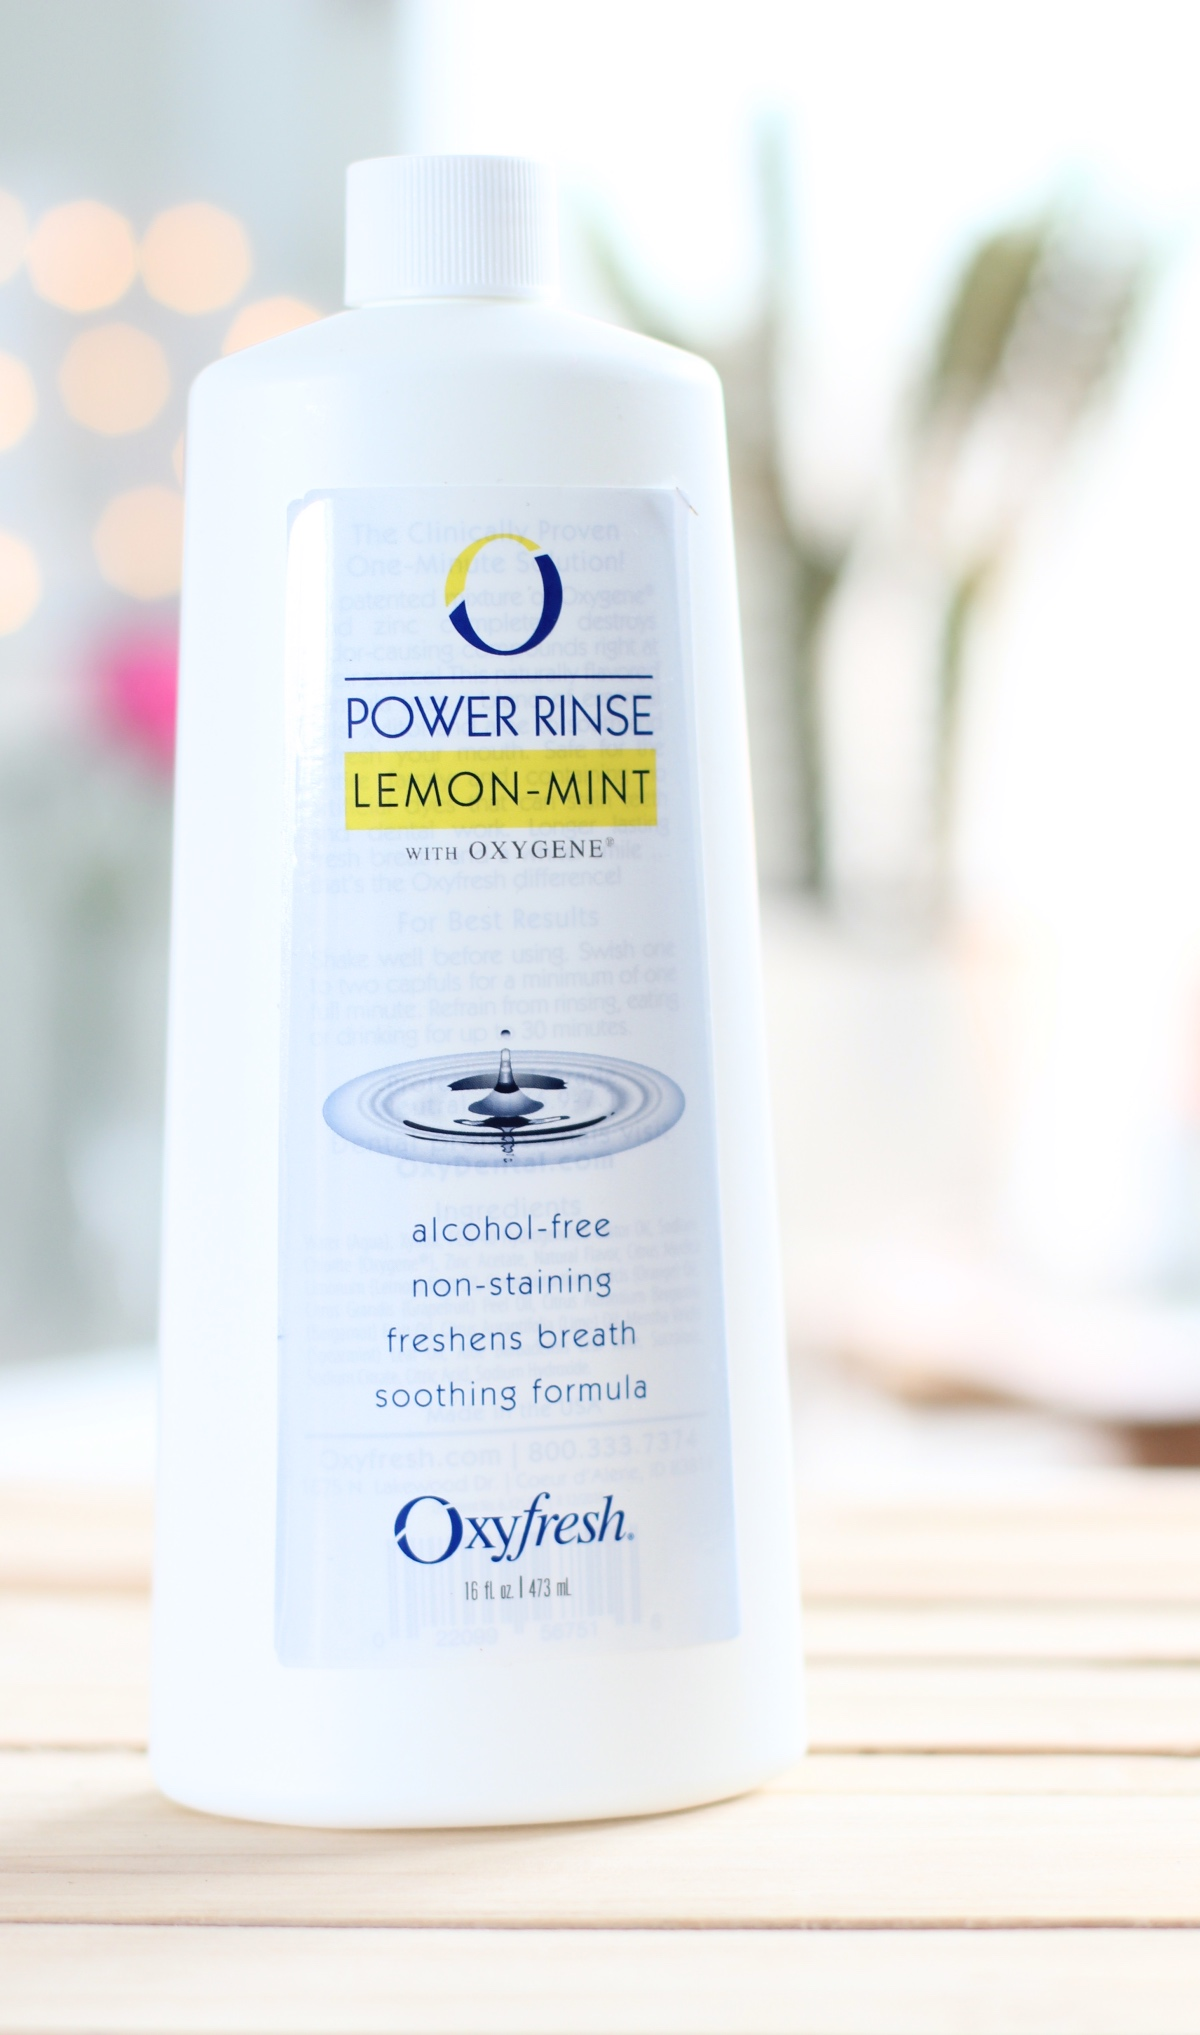 Oxyfresh Lemon-Mint Power Rinse